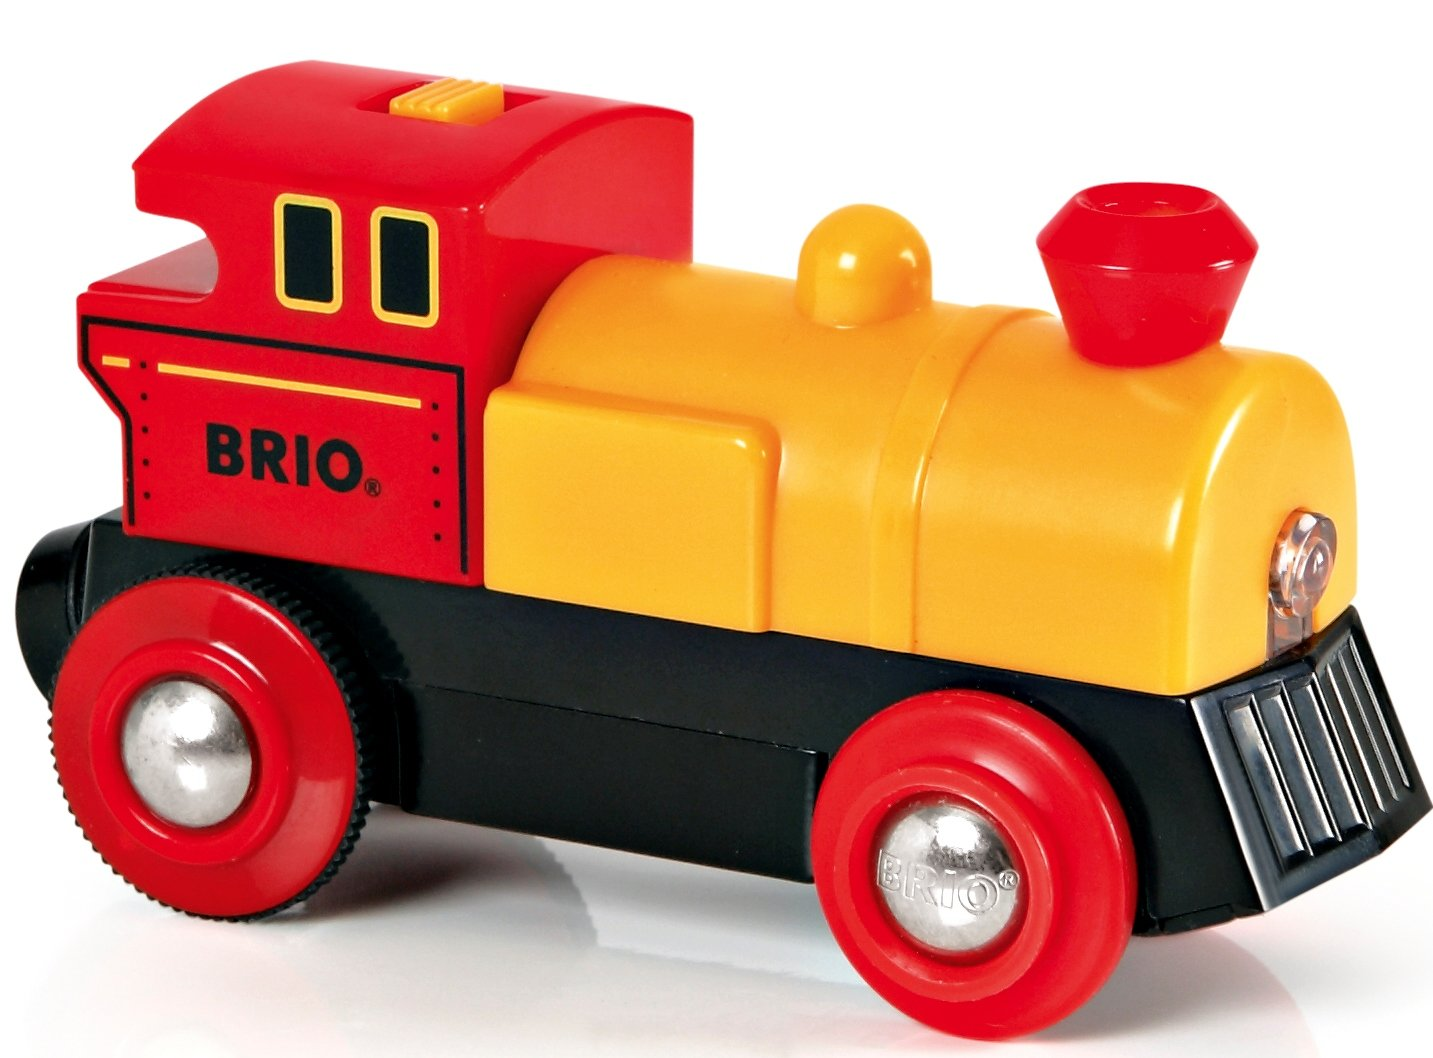 BRIO World - 33594 Two-Way Battery-Operated Engine | Train Toy for Kids Ages 3 and Up by Brio